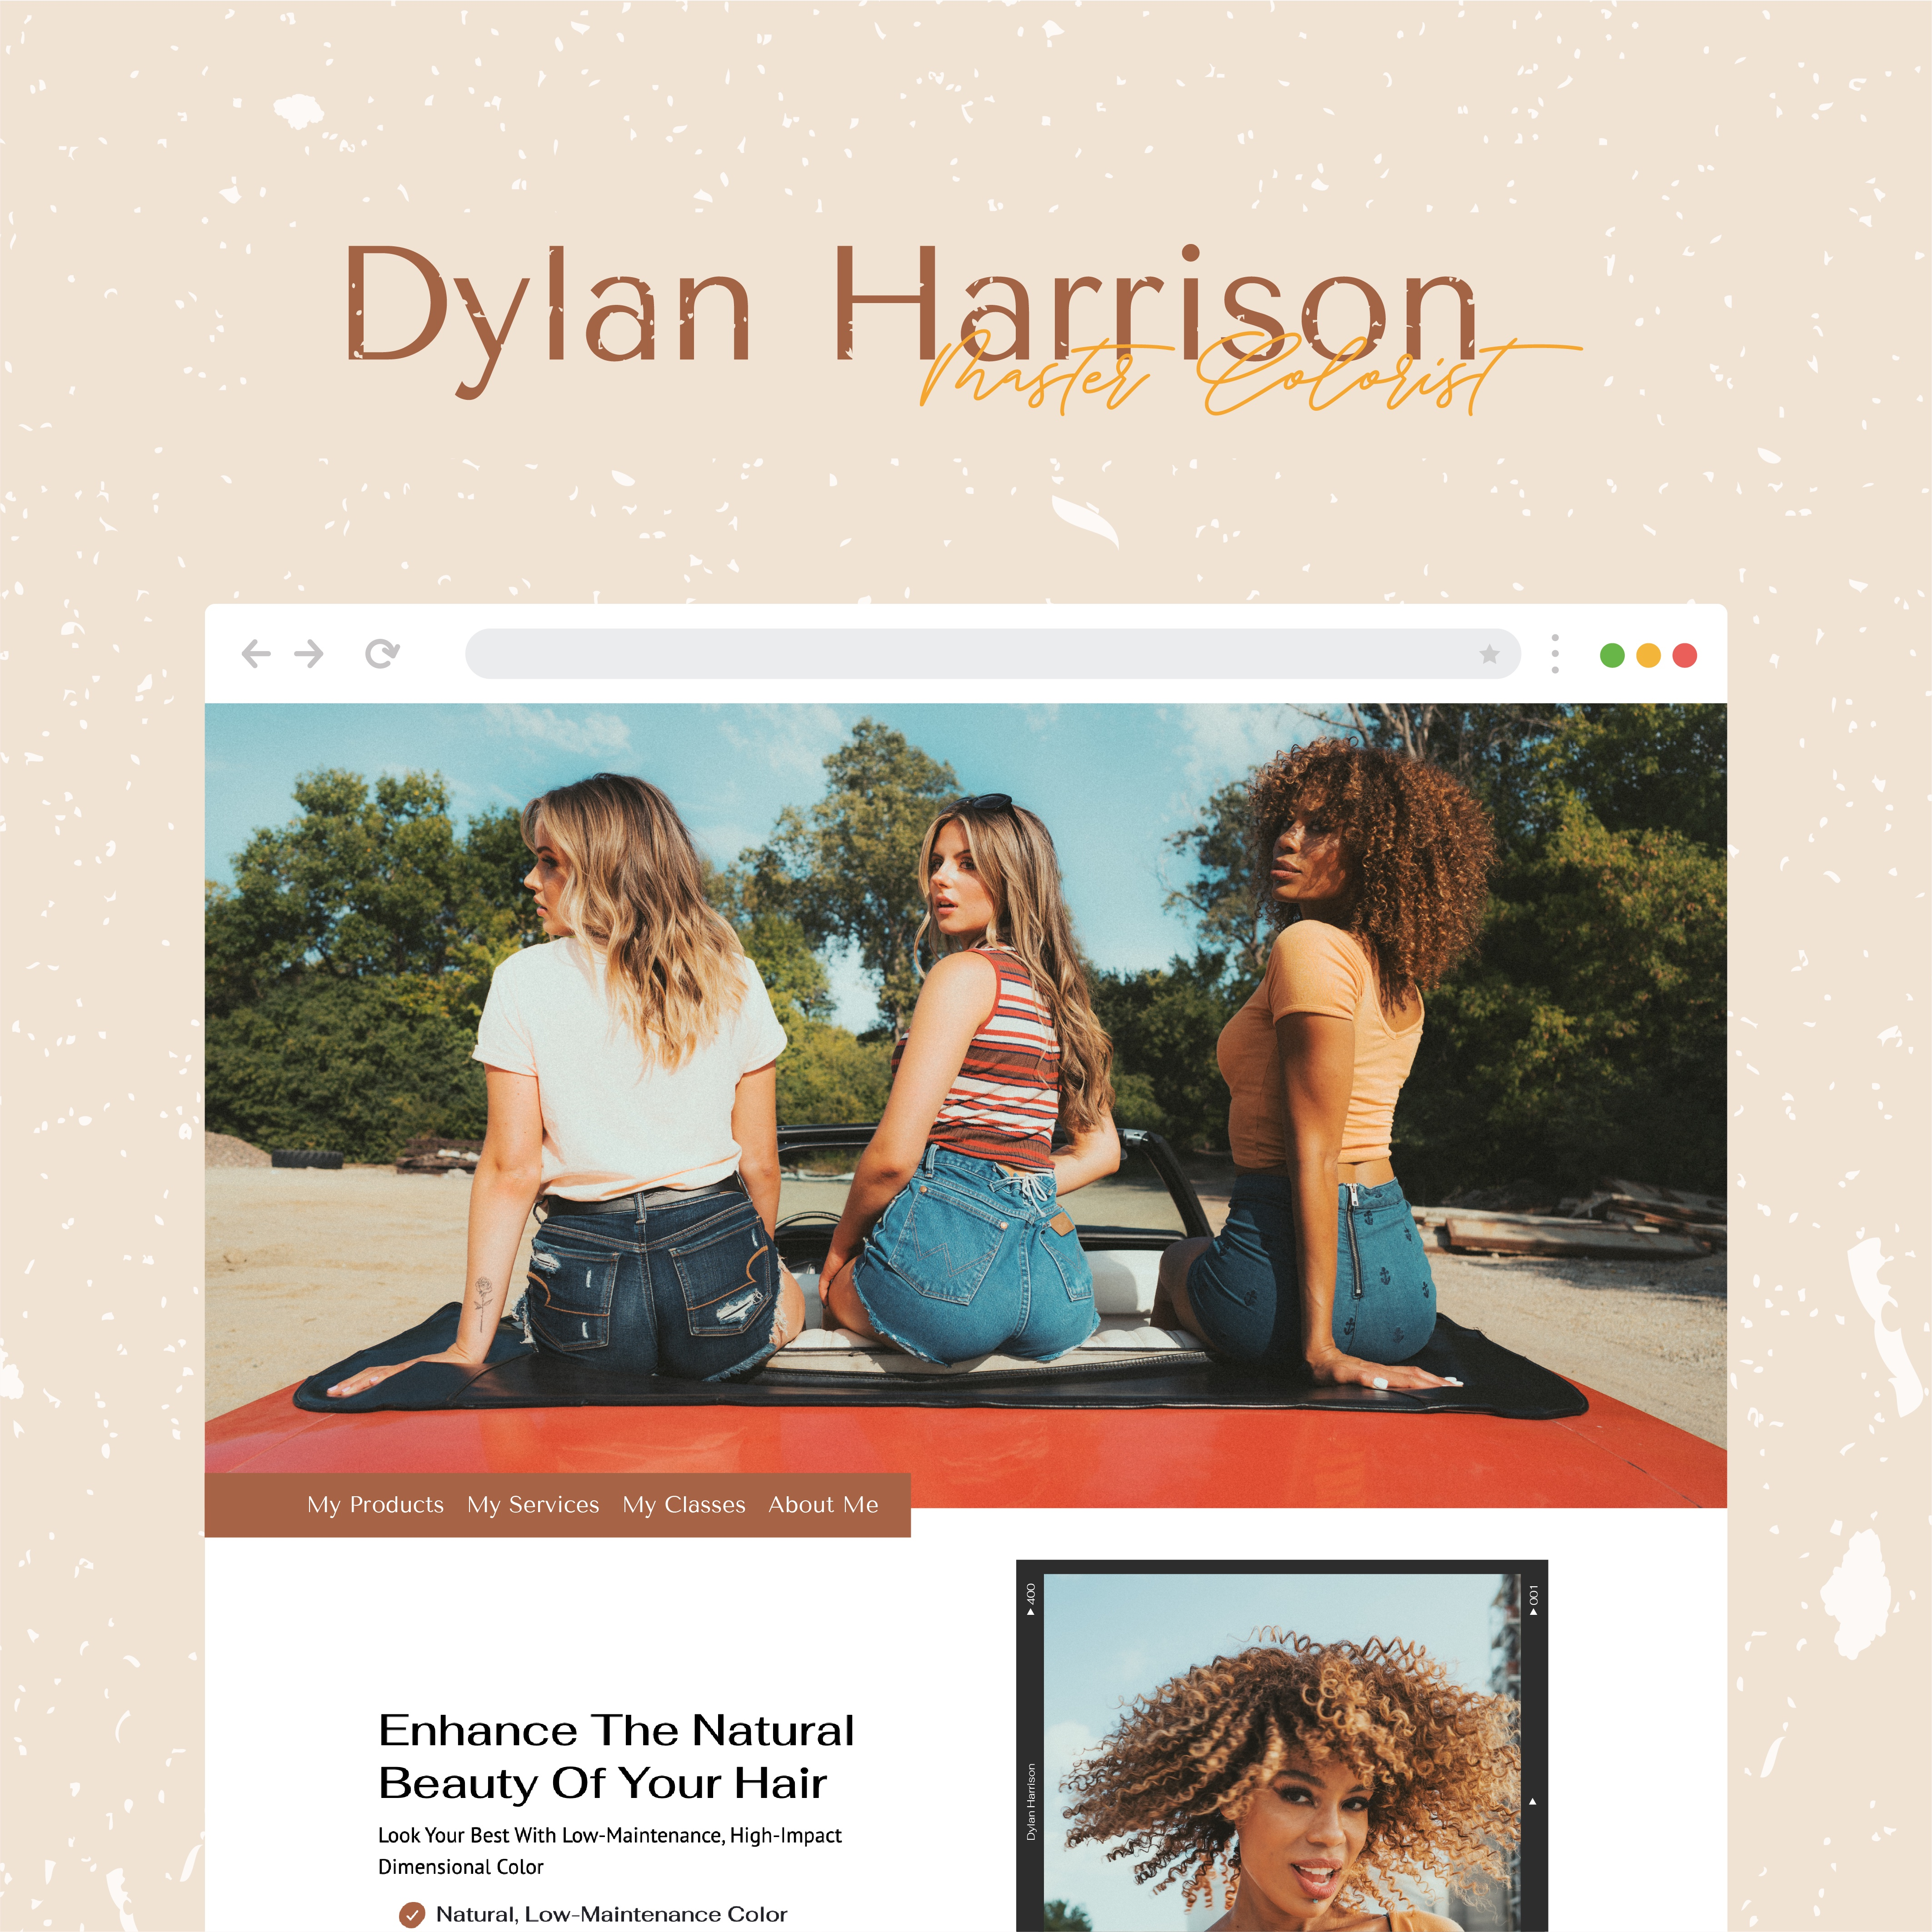 Dylan Harrison Website Mock Up